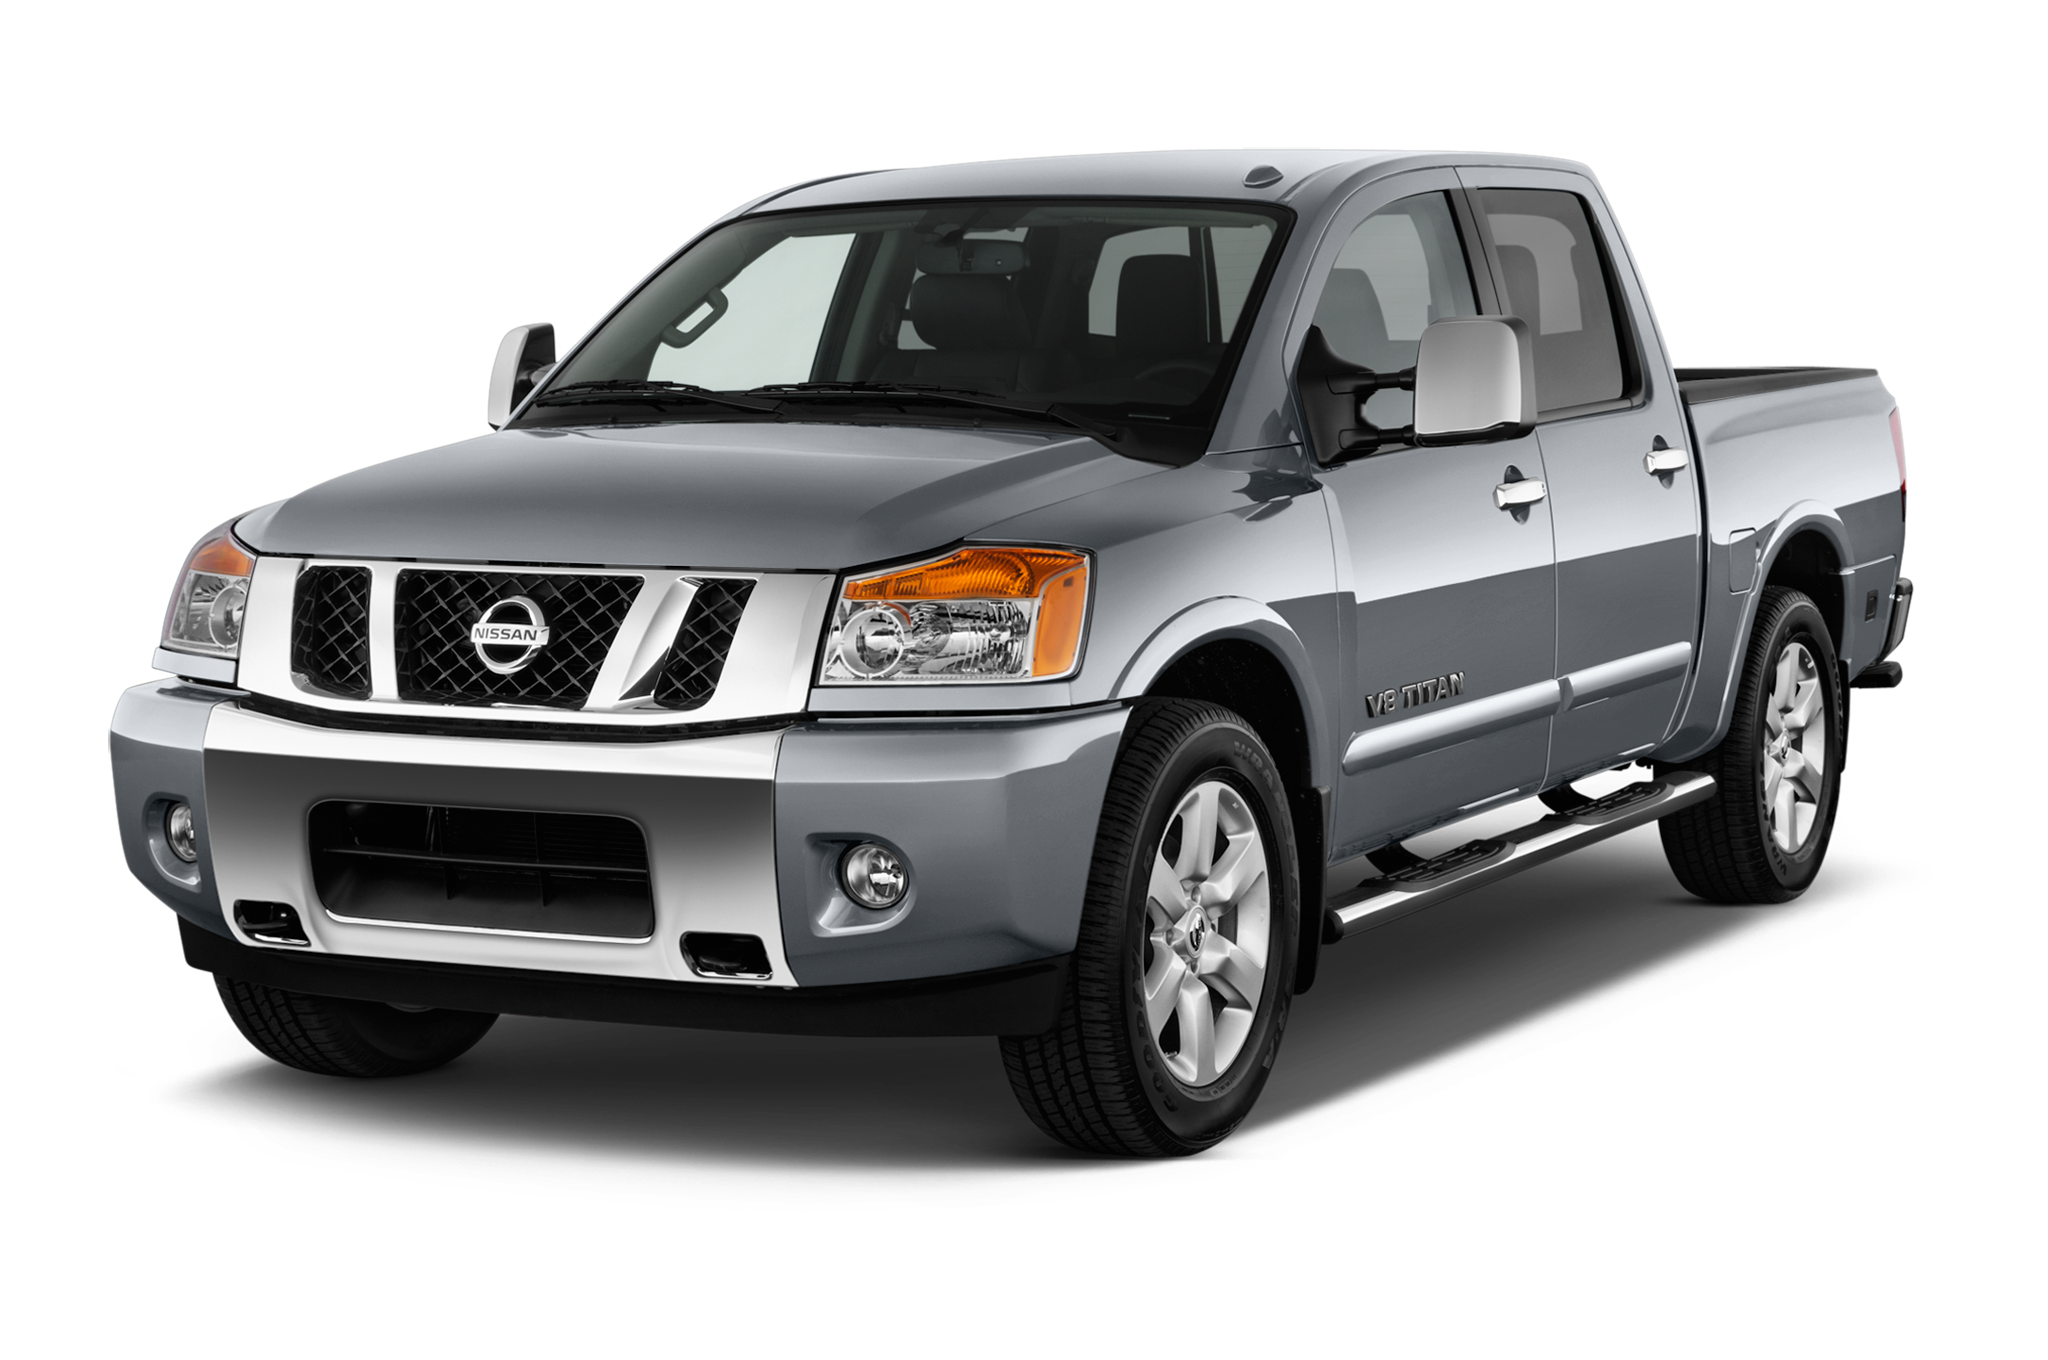 Nissan Cars - International Car Price & Overview